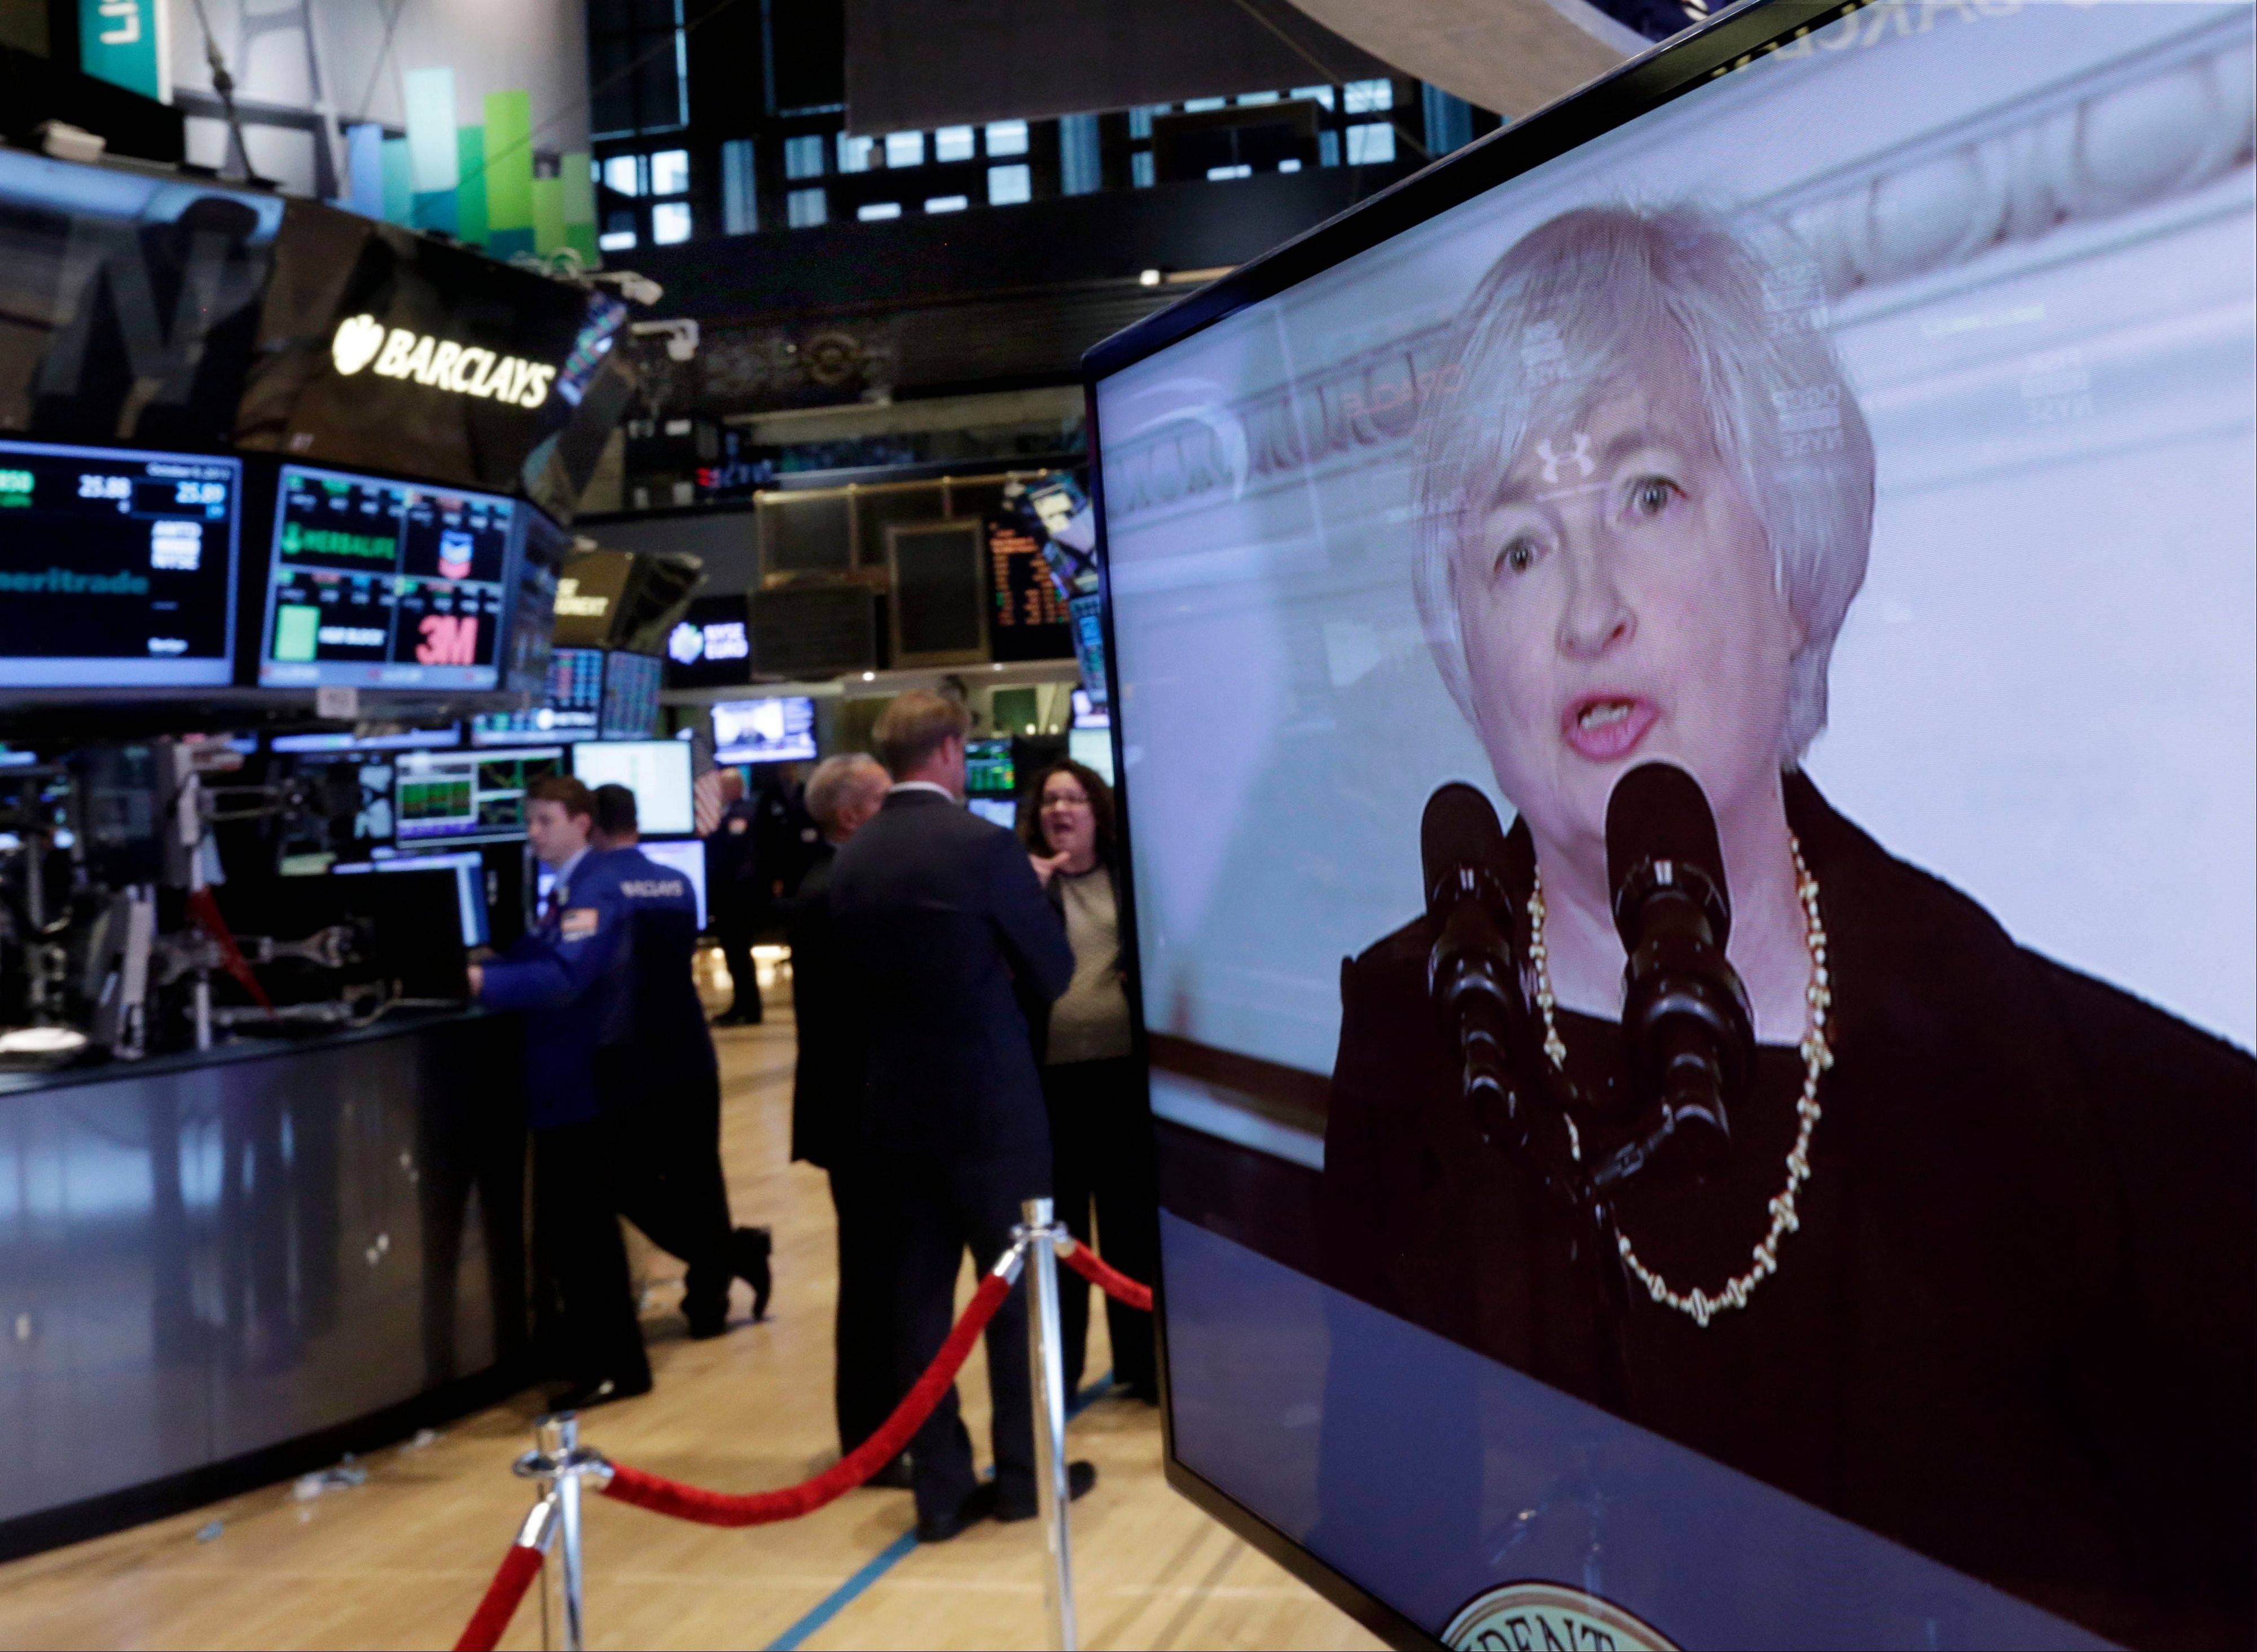 Federal Reserve Chair nominee Janet Yellen is shown on a television monitor on the trading floor of the New York Stock Exchange Wednesday, when President Barack Obama announced she was his choice to succeed Ben Bernanke.